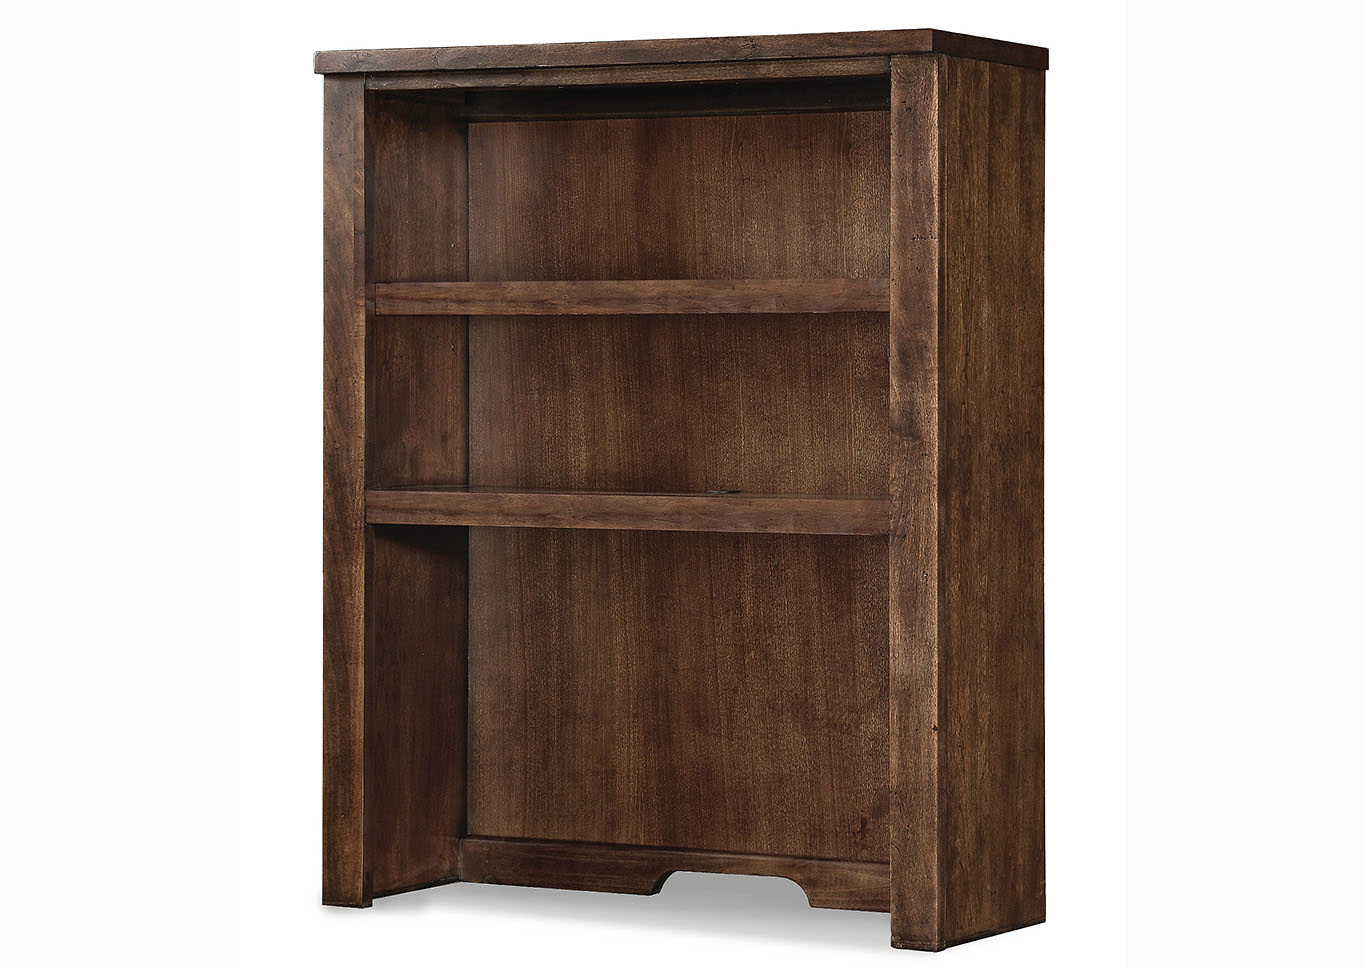 Attractive Theodore File Cabinet W/ Bookcase Hutch,Flexsteel